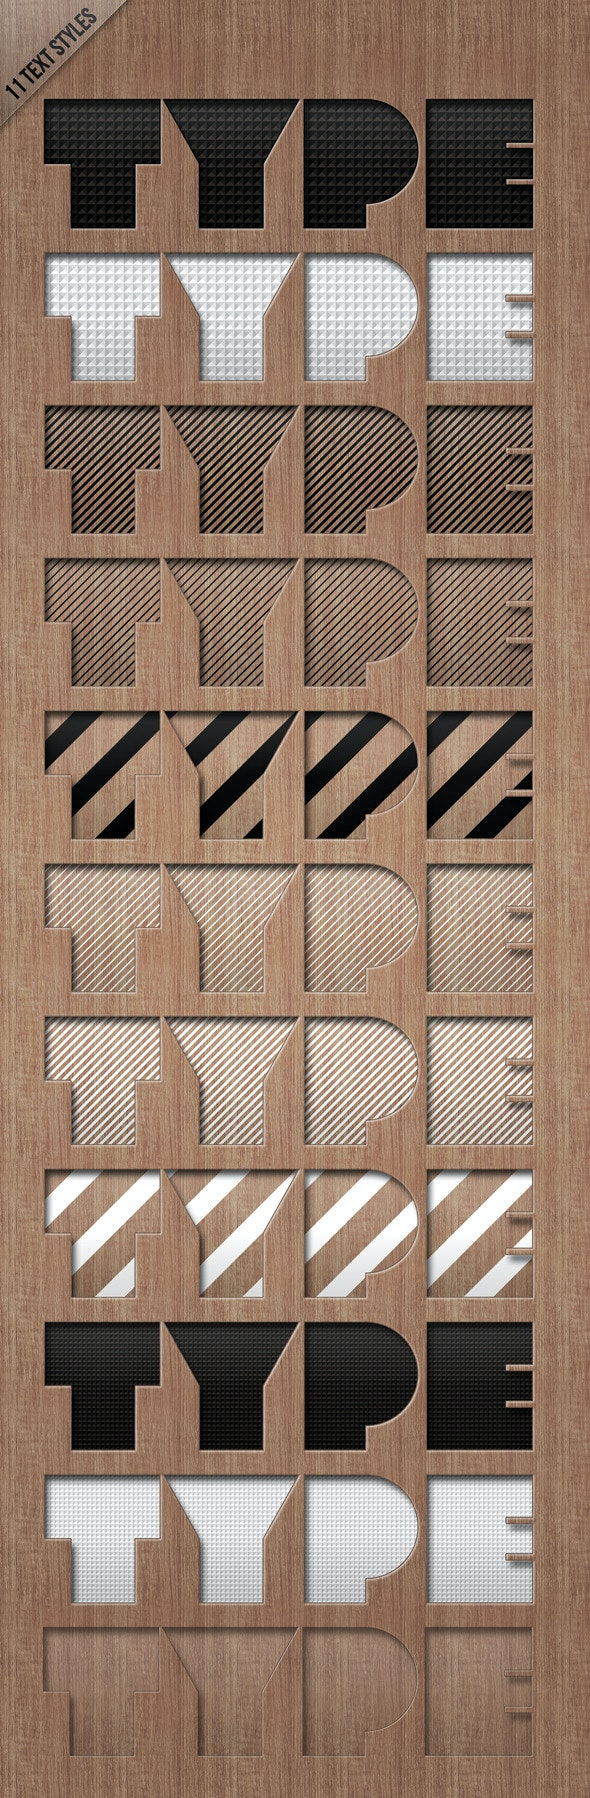 Text Styles LETTERPRESSED - Text Effects Styles